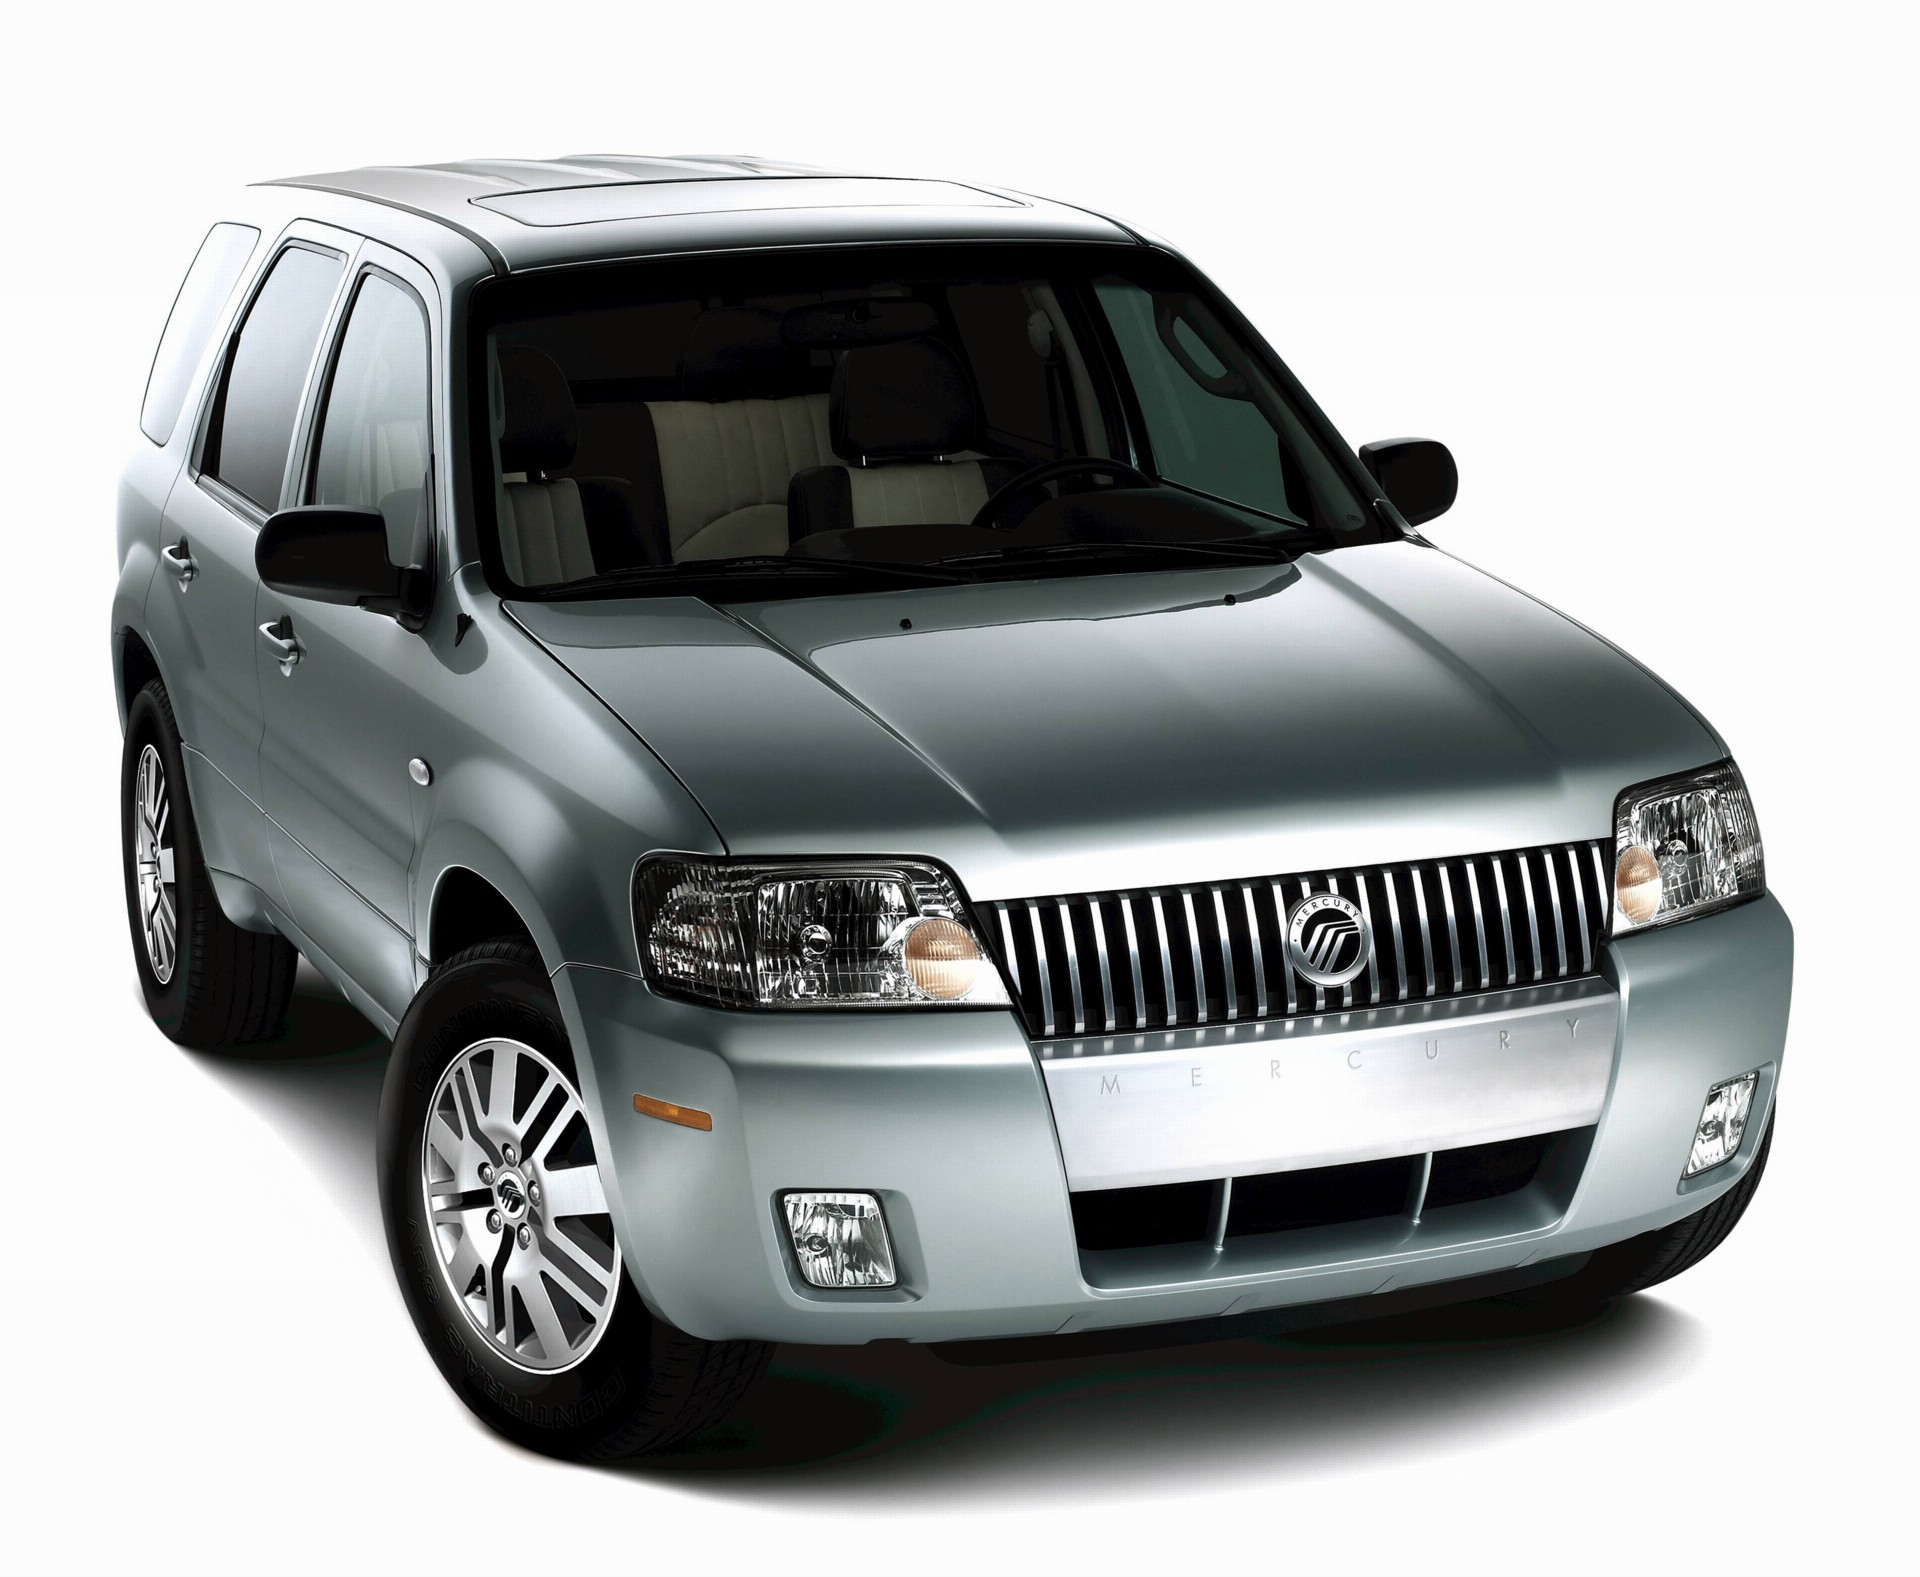 2007 Mercury Mariner Hybrid History Pictures S Value Research And News